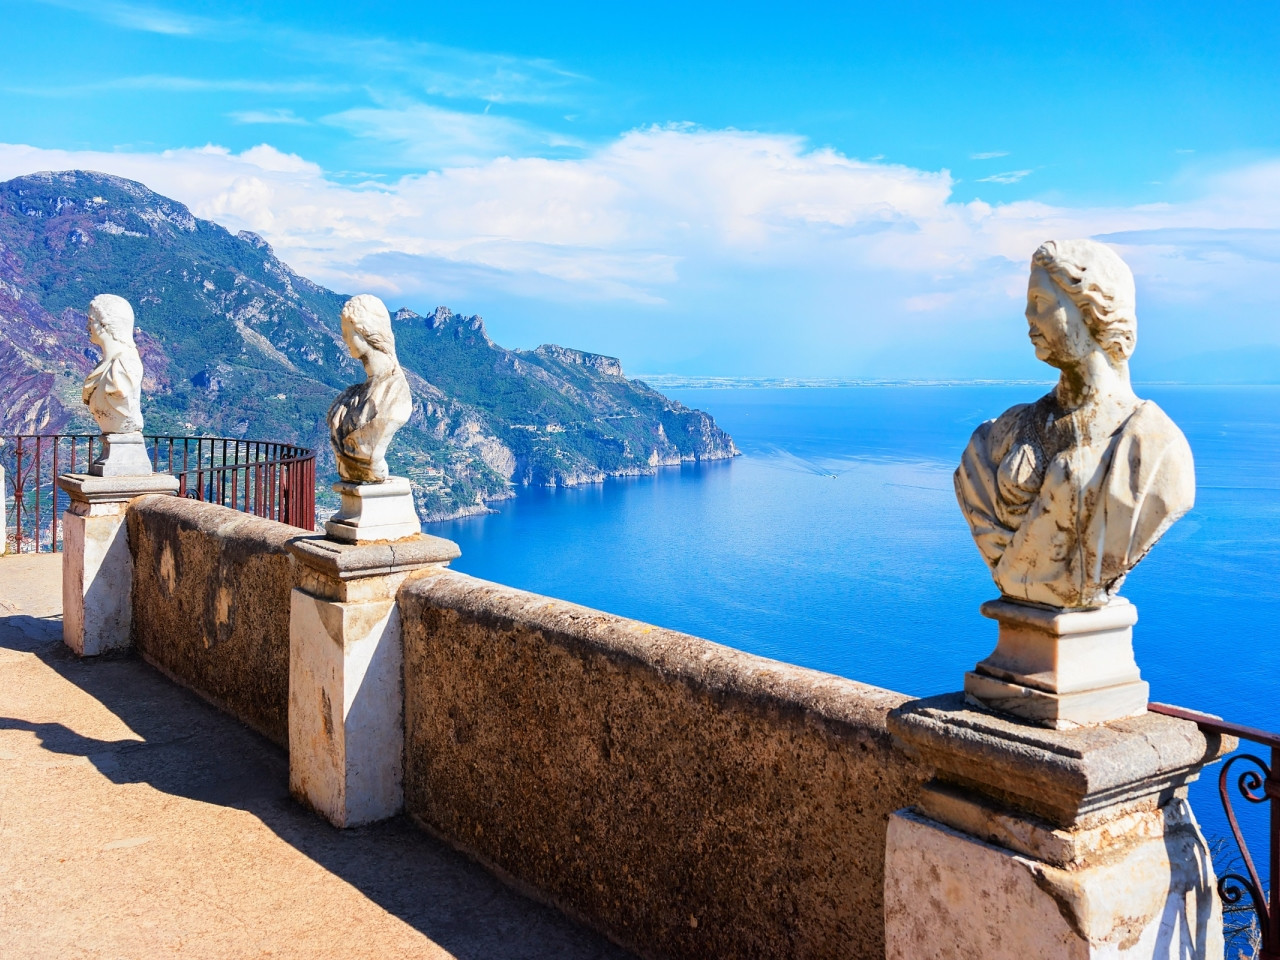 Amalfi coast historic tour|Positano historic tour|Amalfi historic tour